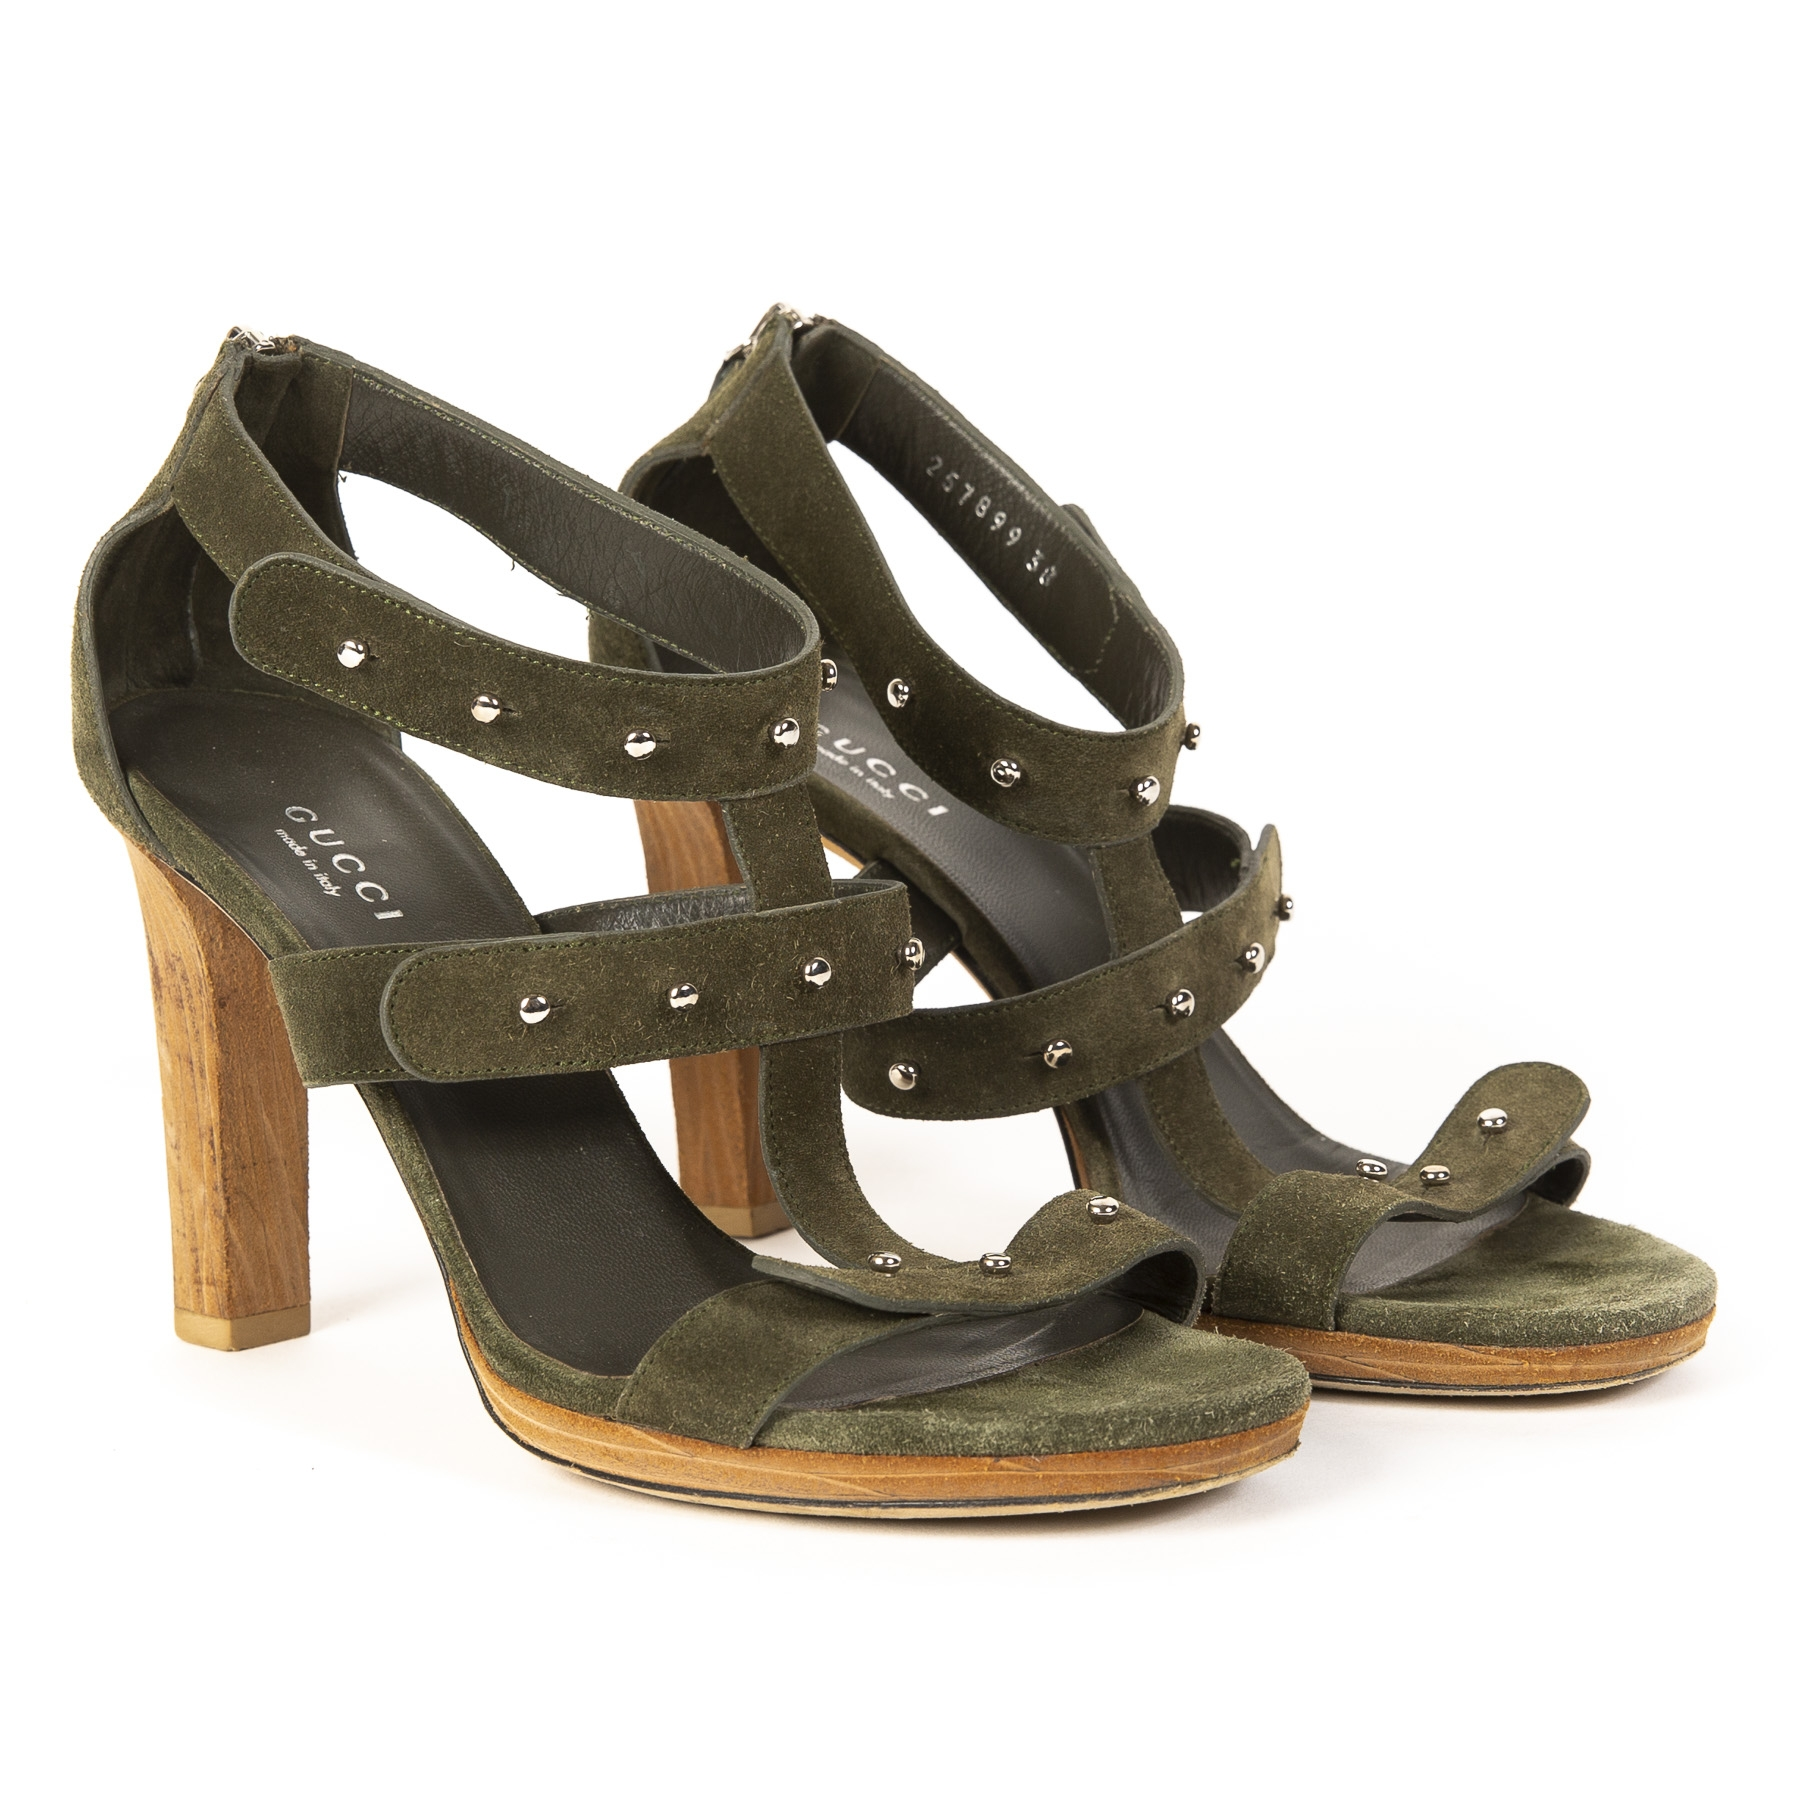 Gucci Military Green Sandals - Size 38